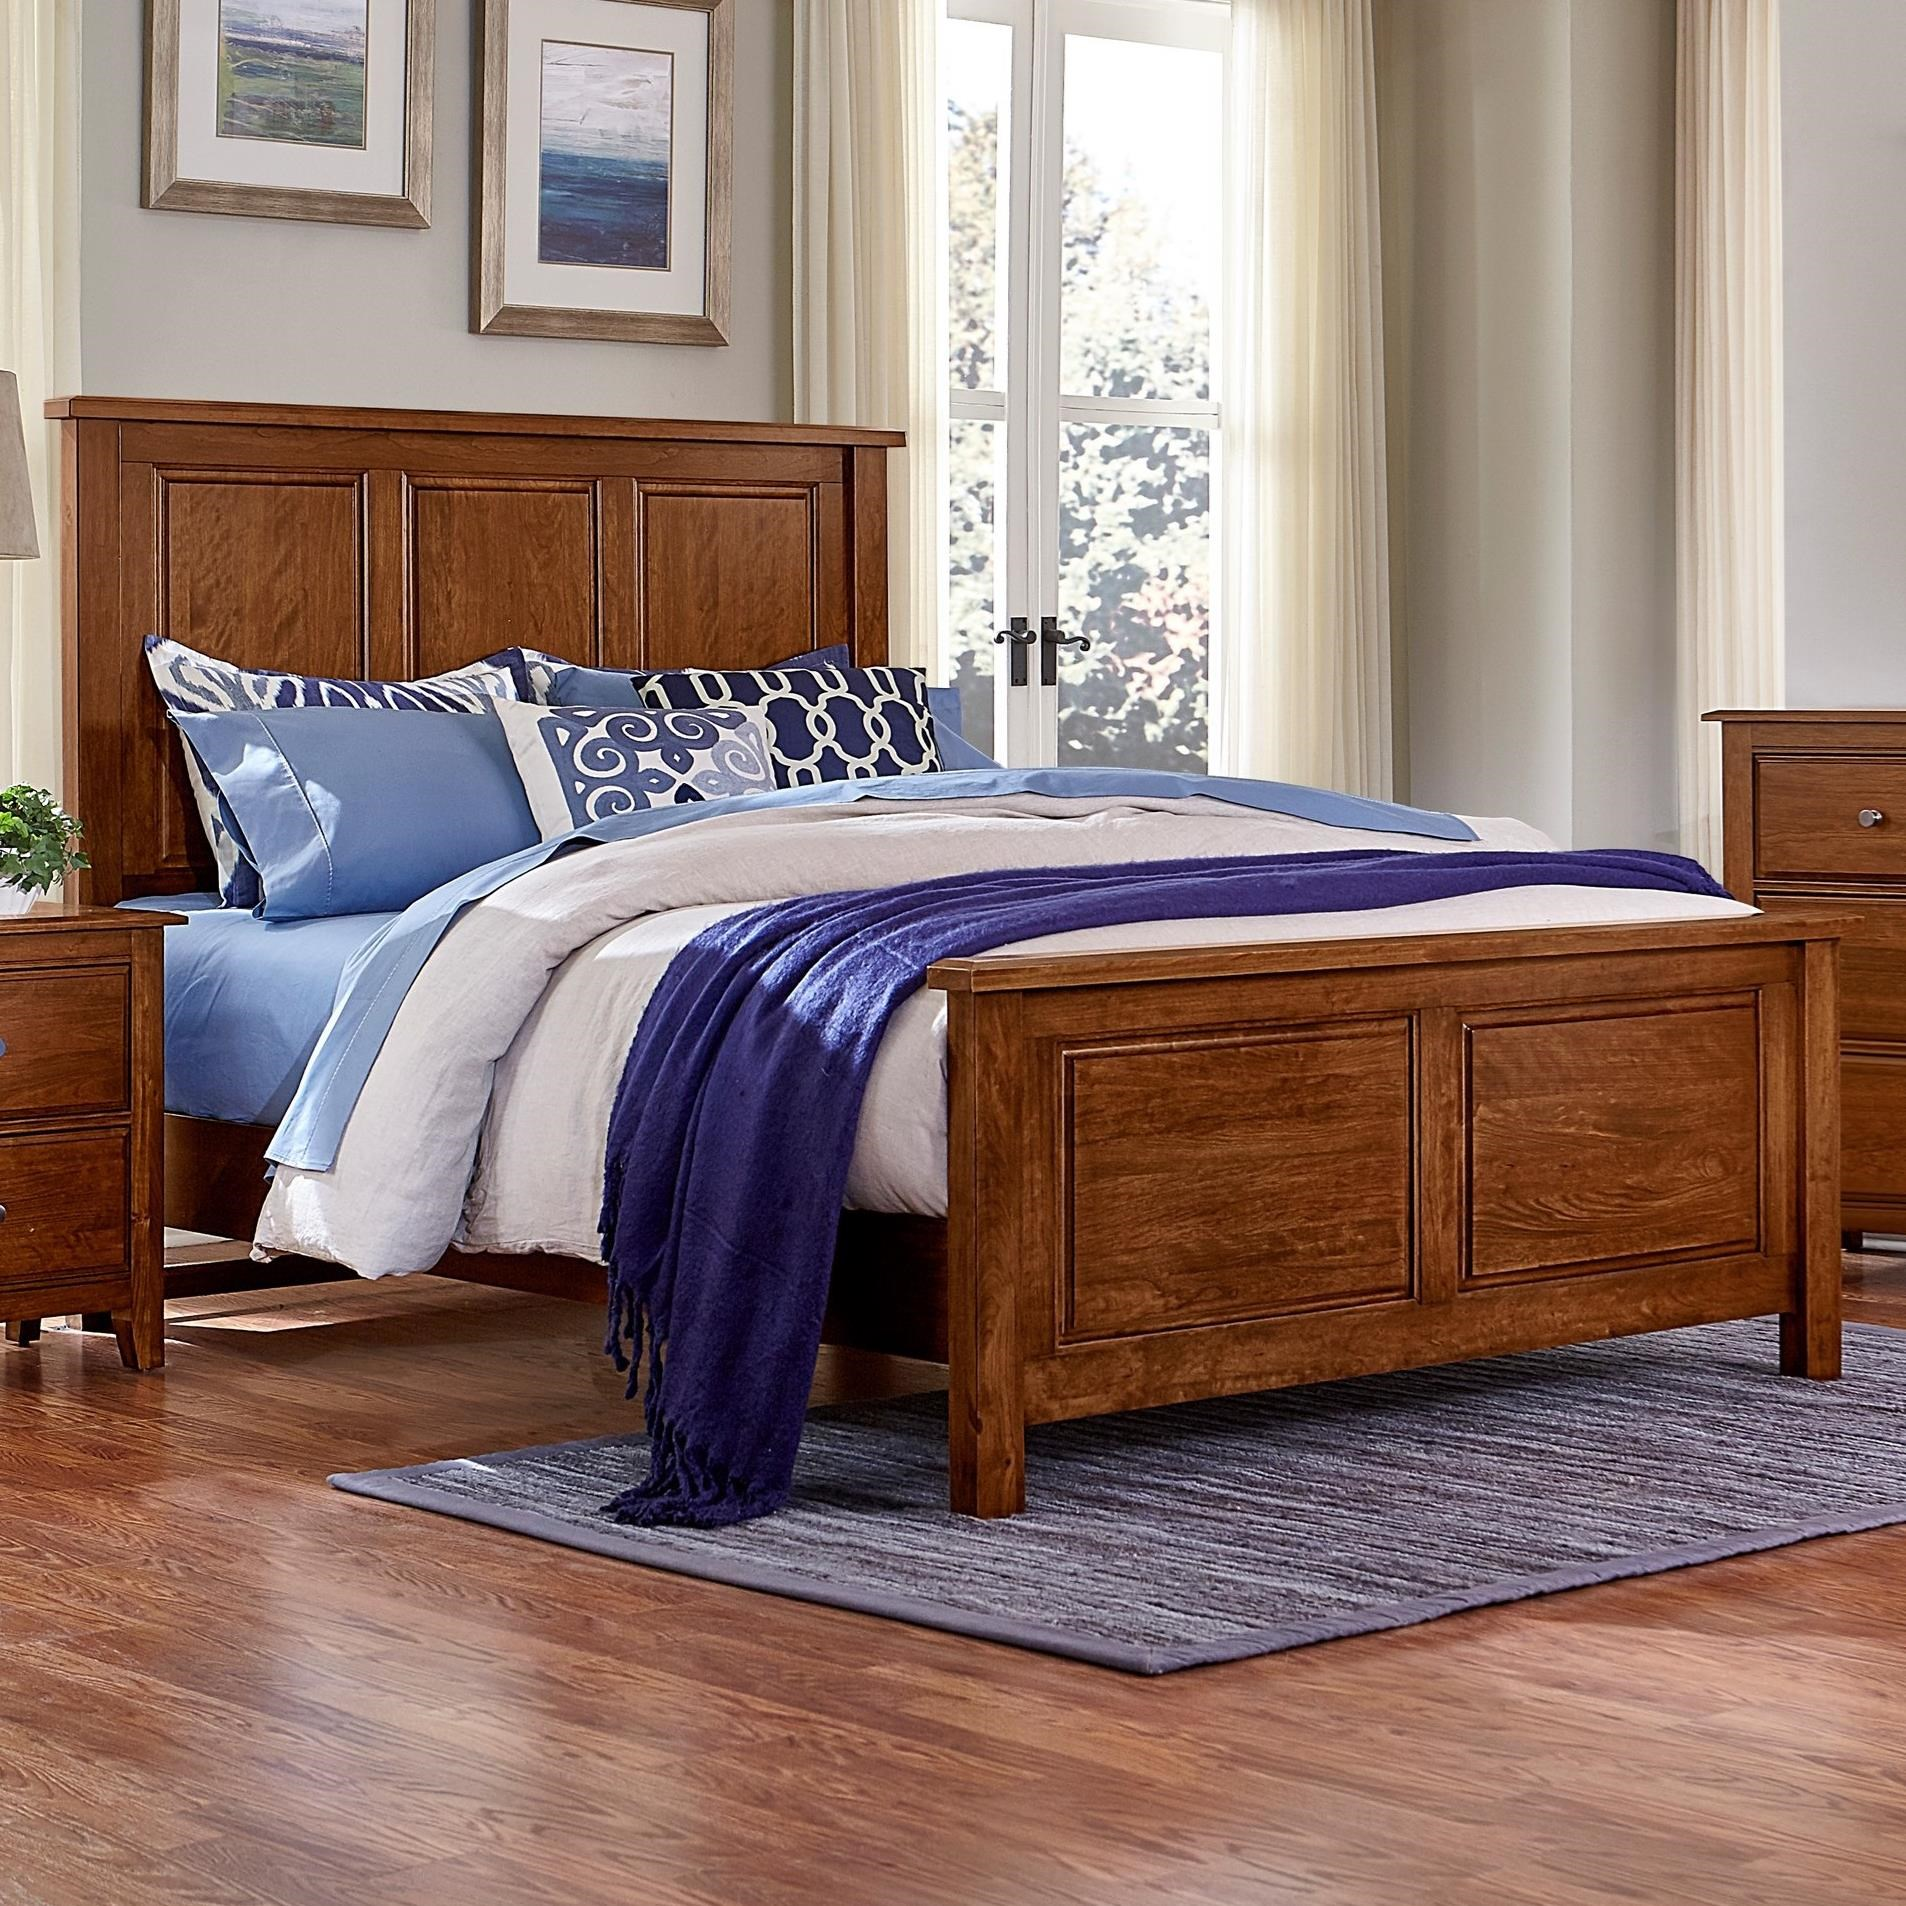 Artisan & Post Artisan Choices Queen Panel Bed - Item Number: 100-559+955+922